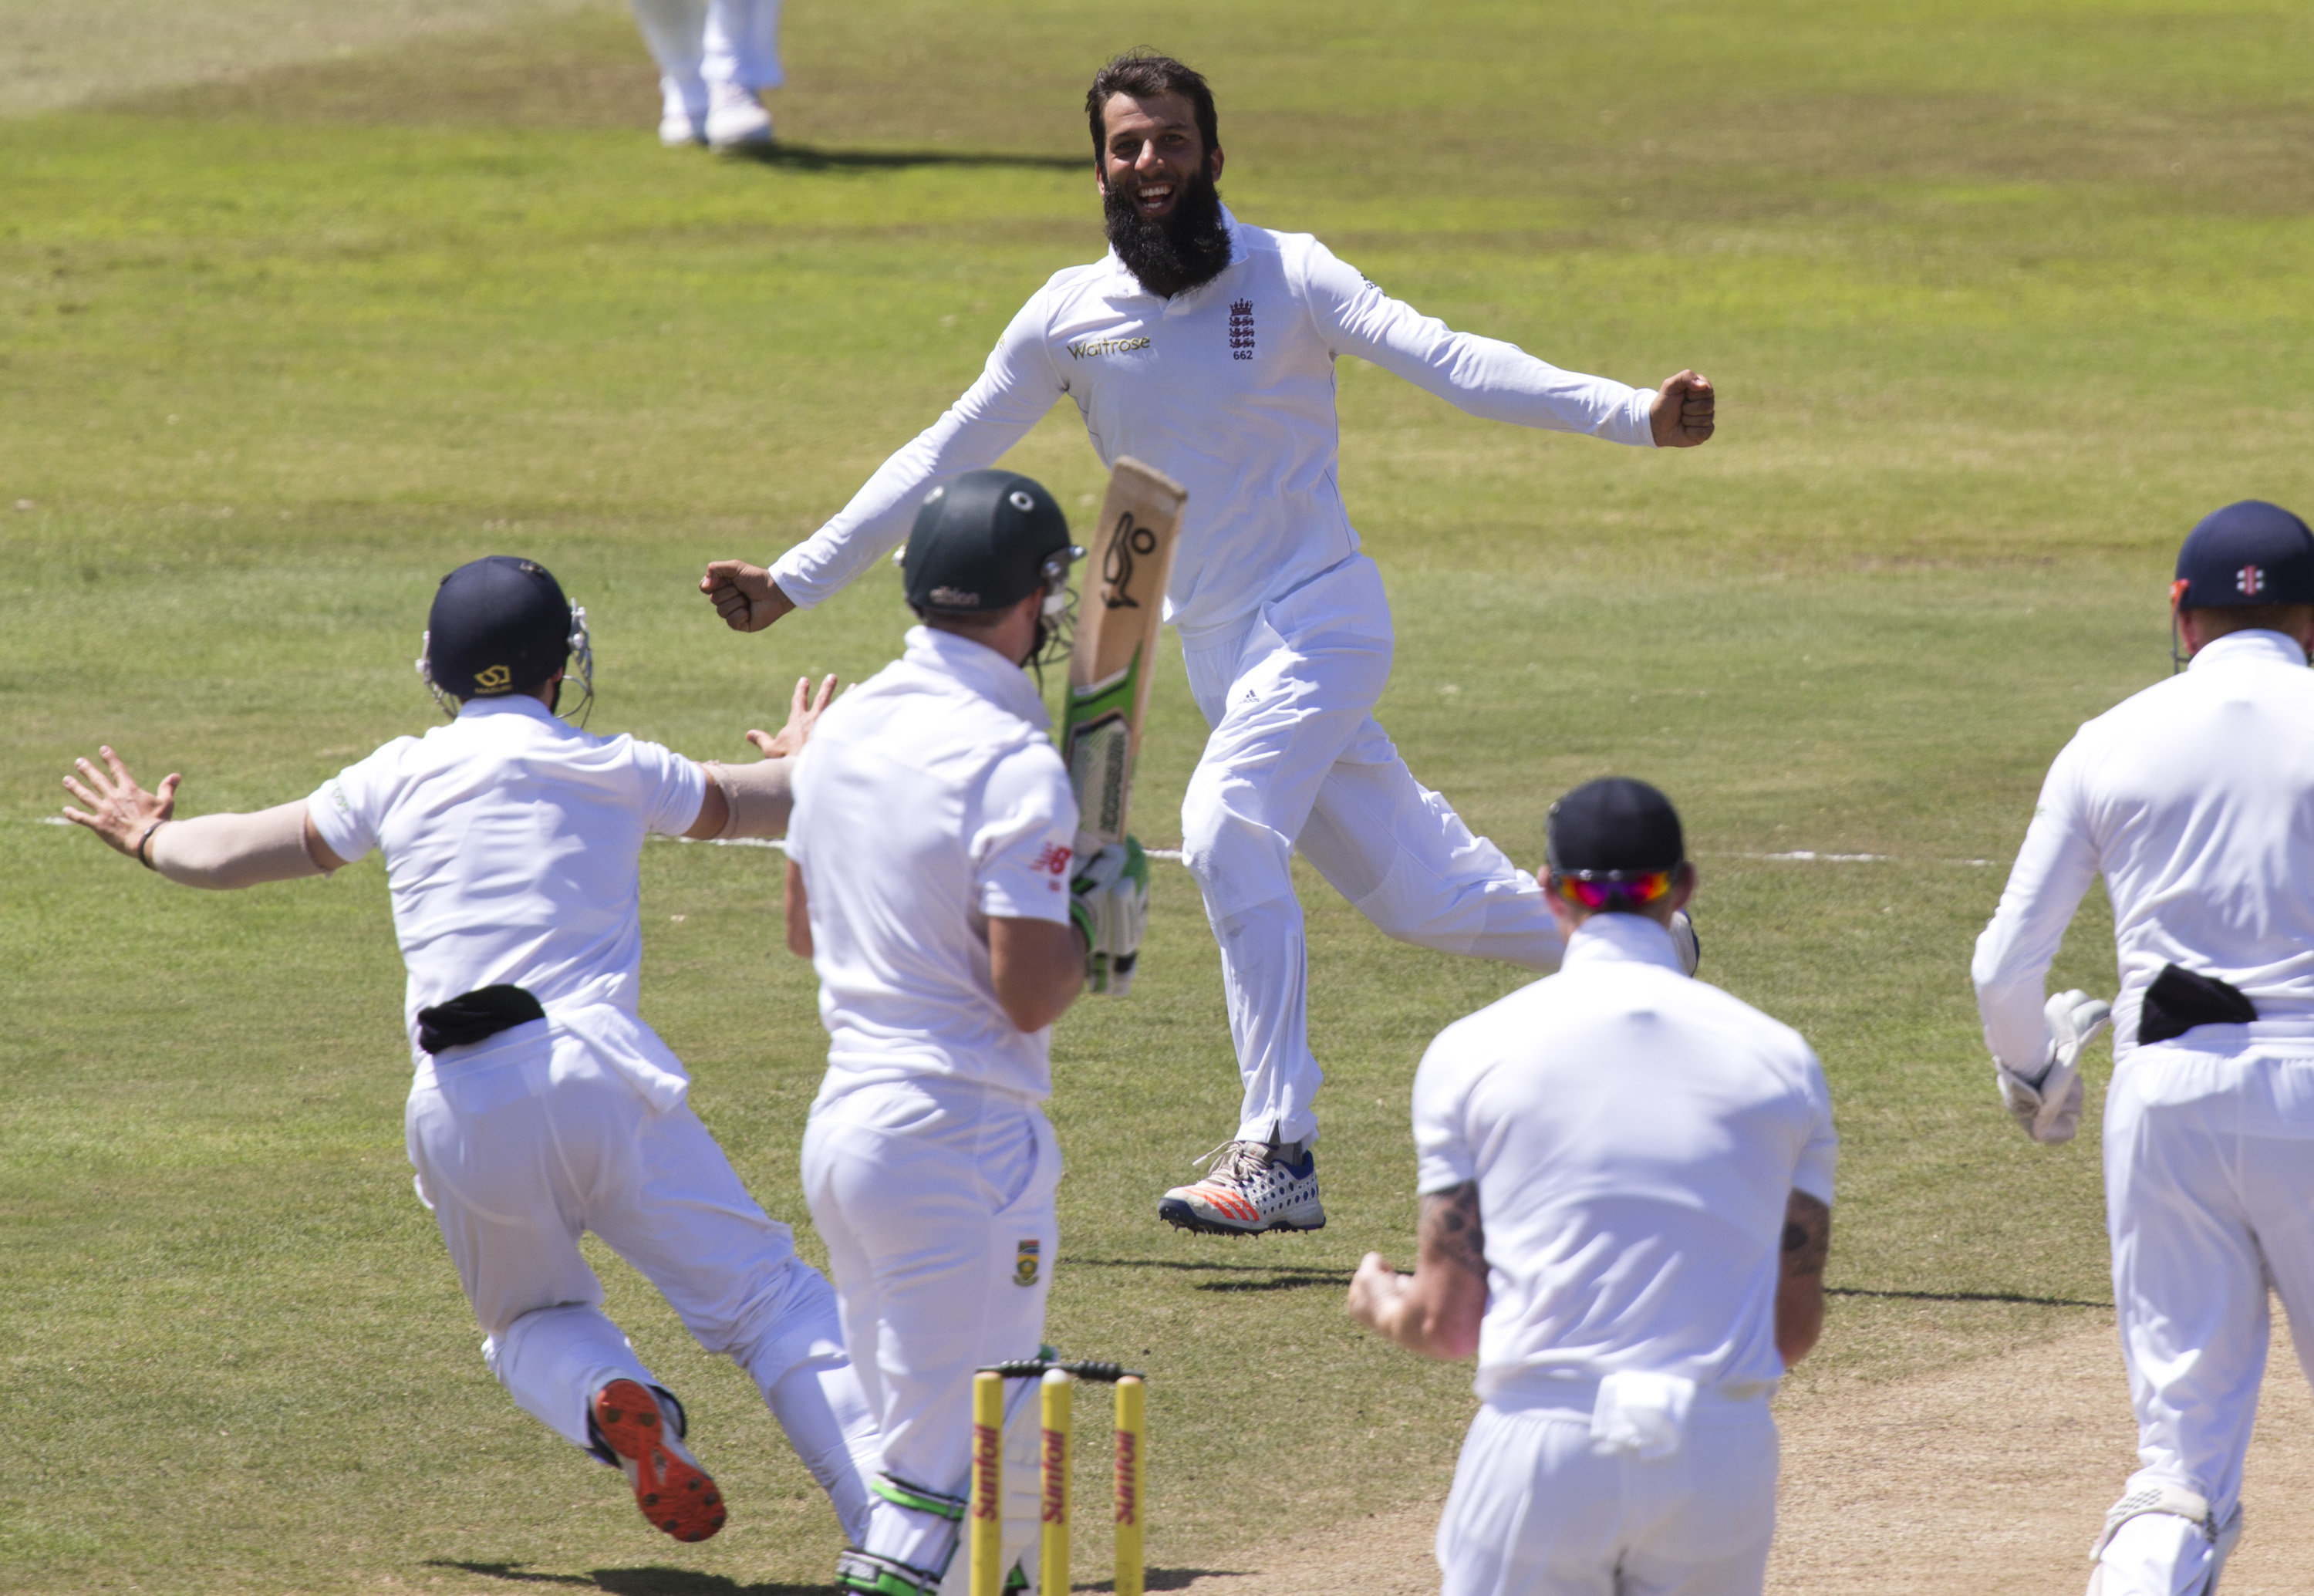 England's Moeen Ali (top) celebrates the wicket of South Africa's AB de Villiers during the first cricket test match in Durban, South Africa, December 30, 2015. Photo: Reuters